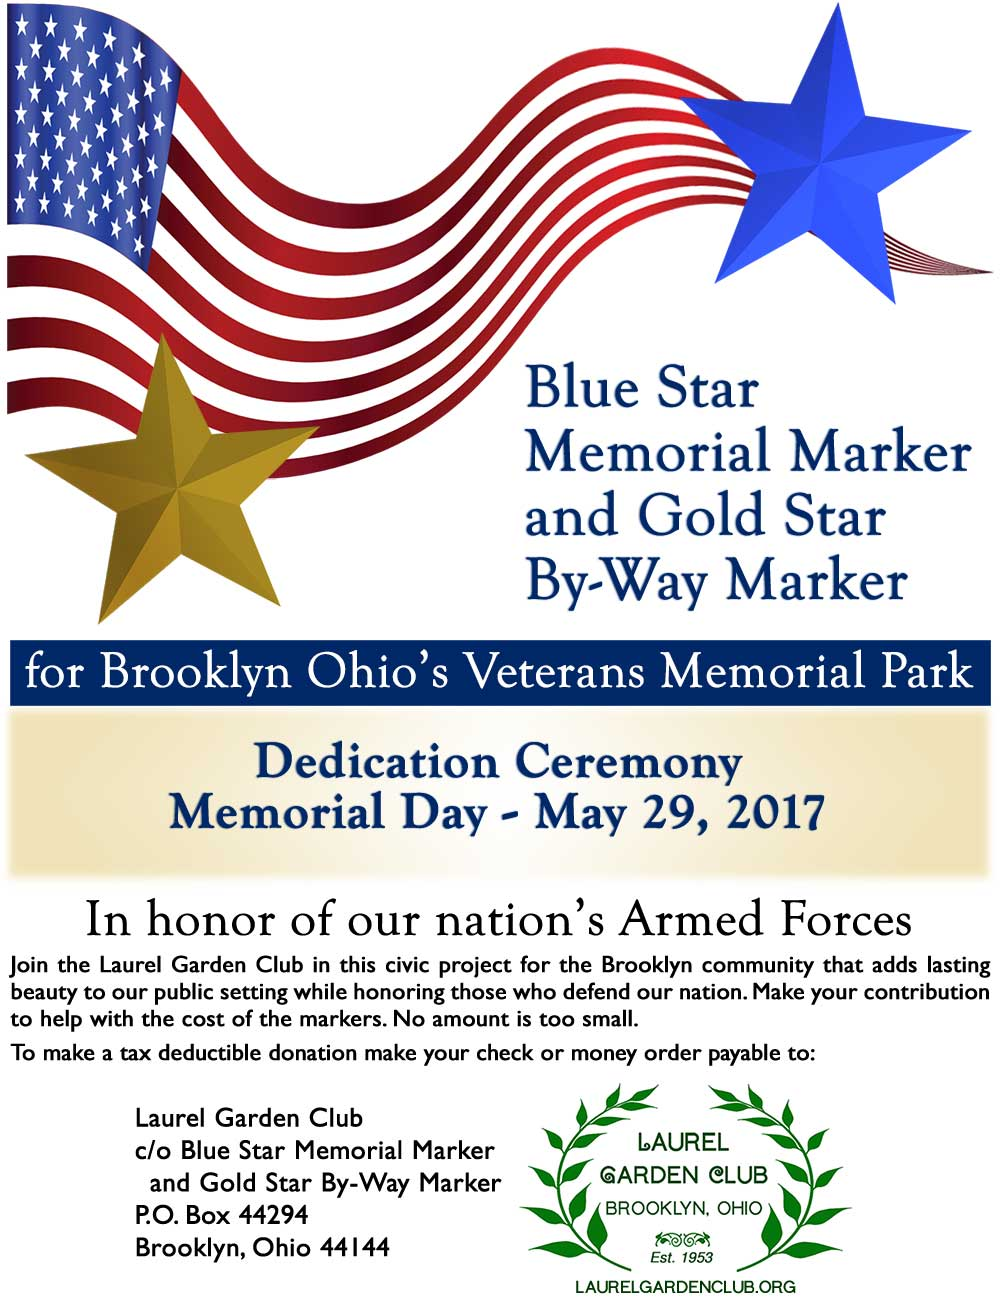 Blue Star Memorial Marker and Gold Star By-Way Marker for Veterans Memorial Park